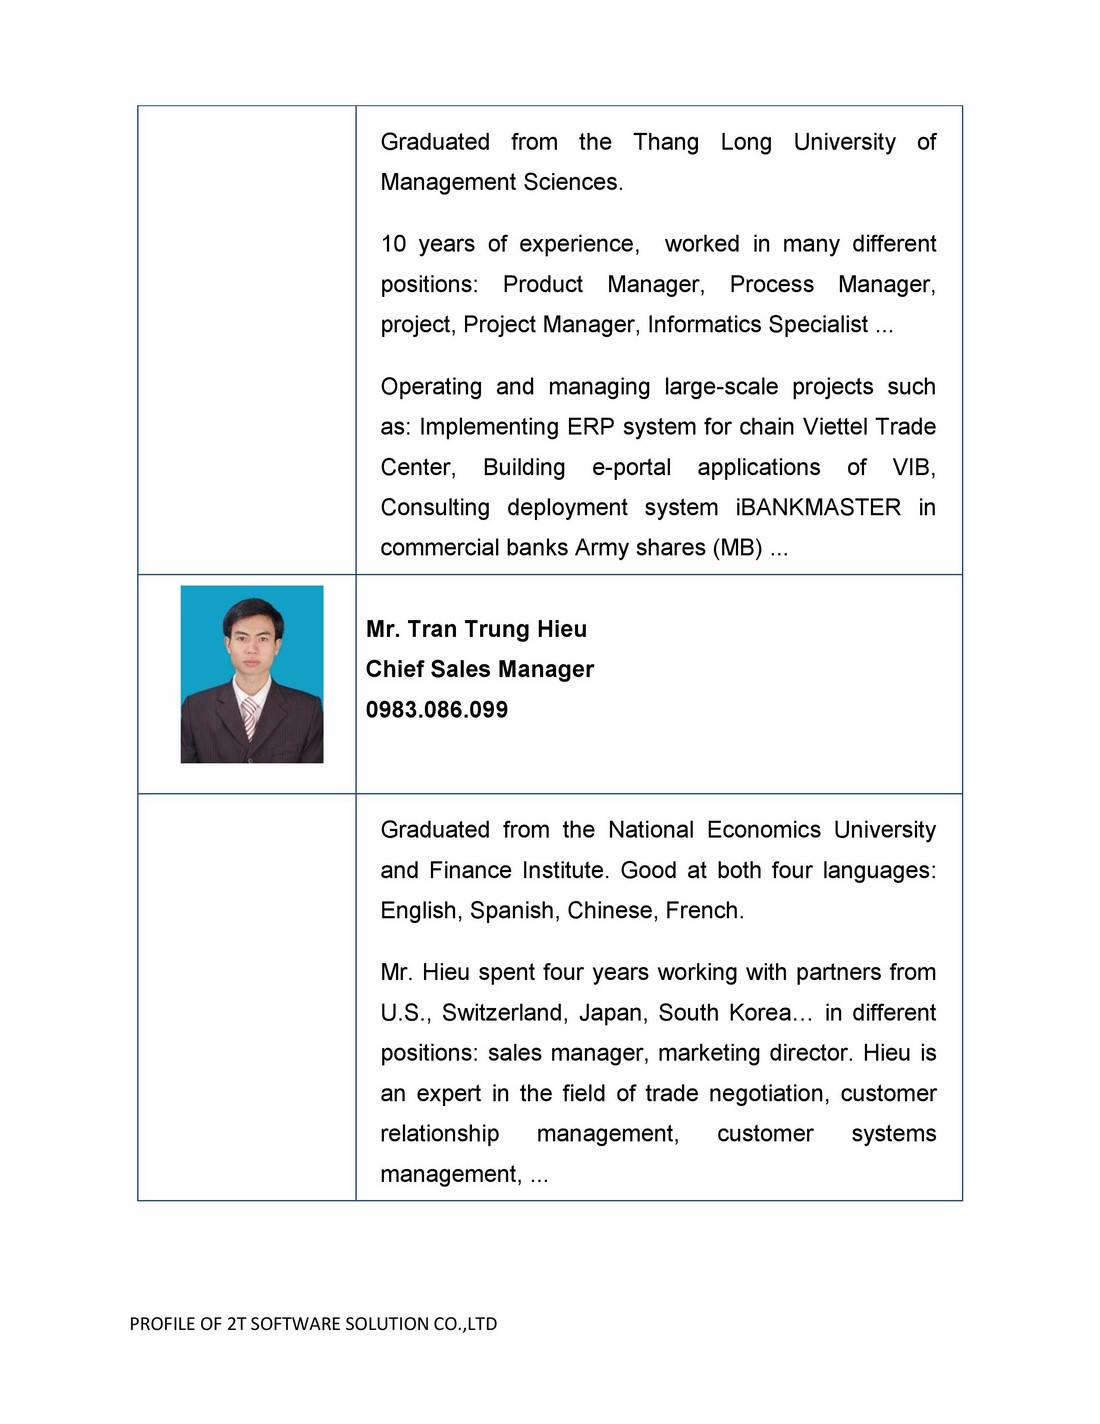 2TS Profile_eng-page-007 (Copy)